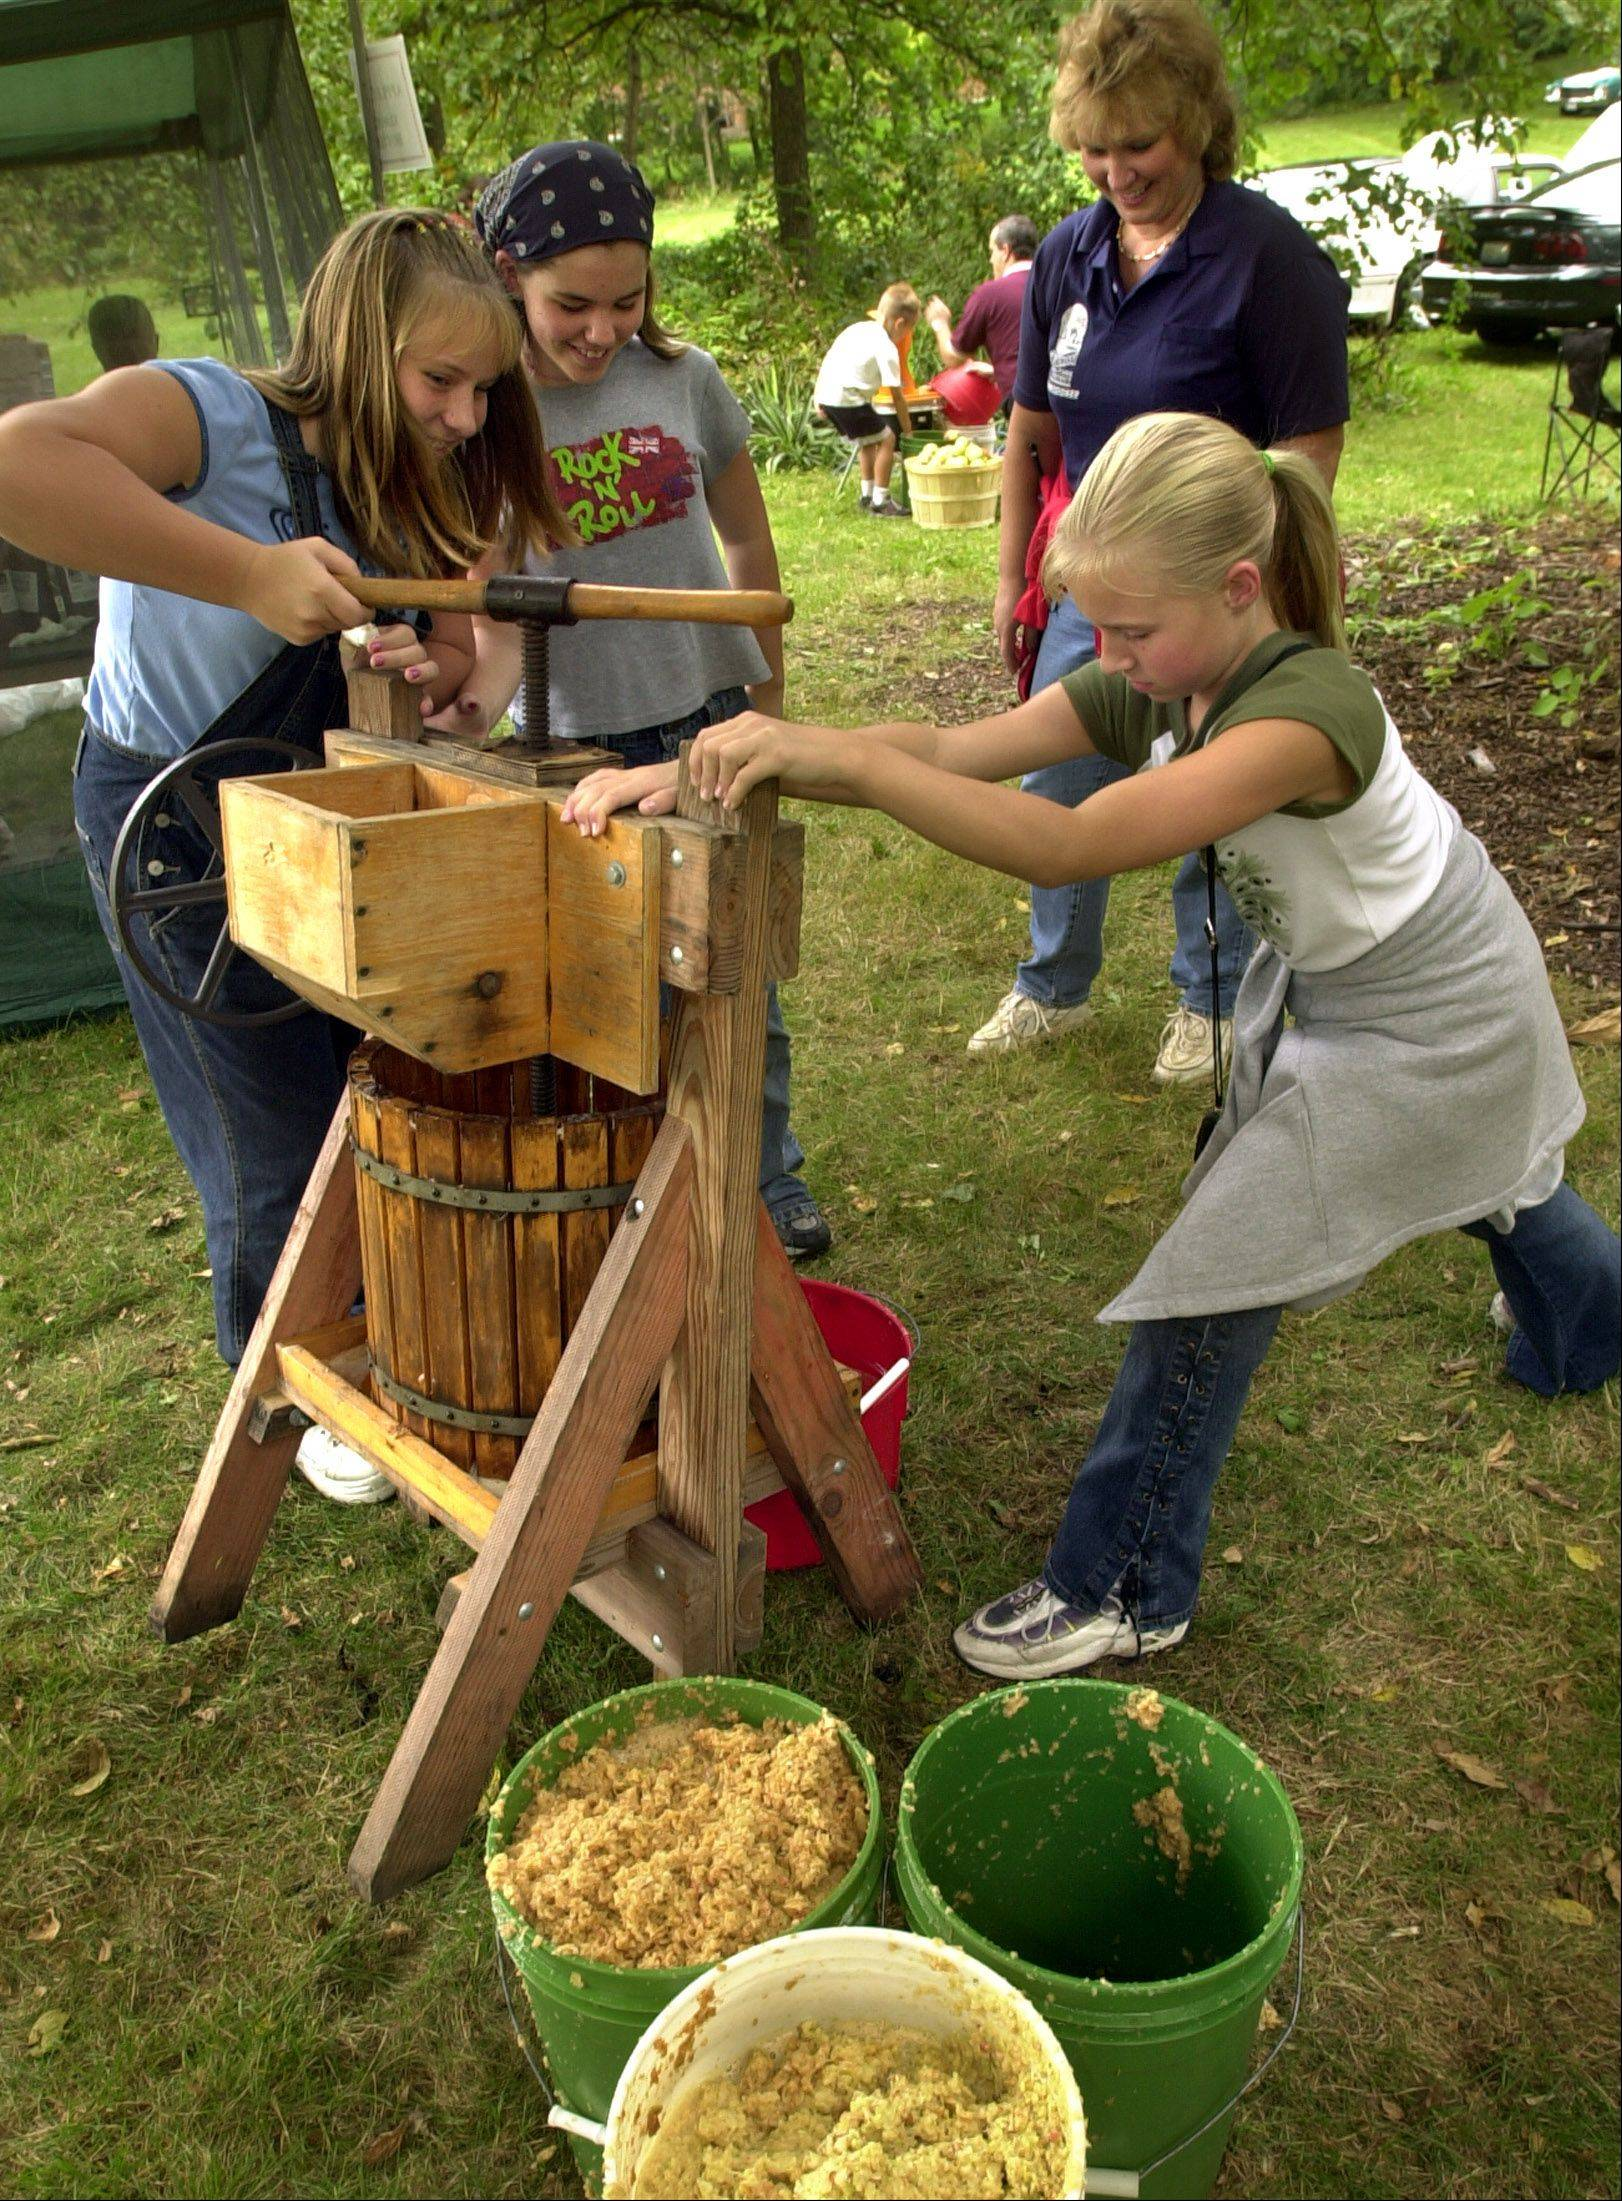 During Harvest Time, weekend visitors to Naper Settlement can try their hand at working a cider press and take part in other pioneer-era activities.